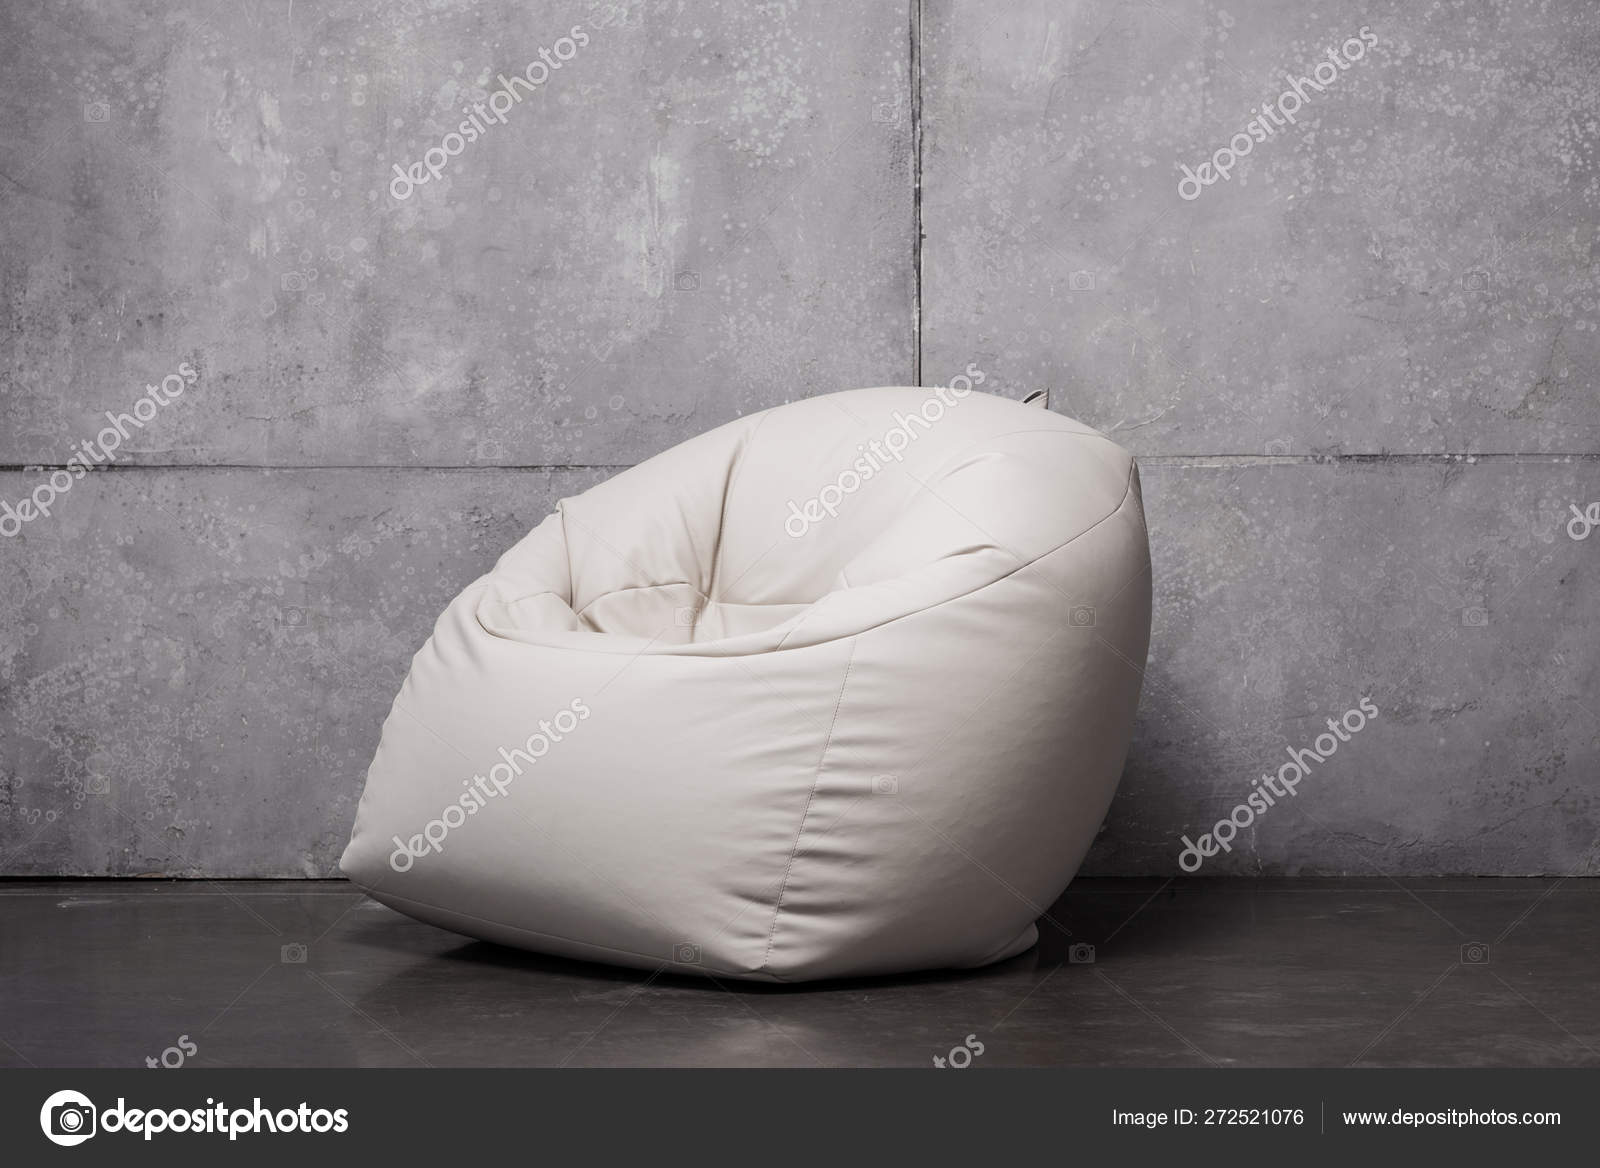 Awe Inspiring White Soft Bean Bag Chair Grey Copy Space Stock Photo Andrewgaddart Wooden Chair Designs For Living Room Andrewgaddartcom